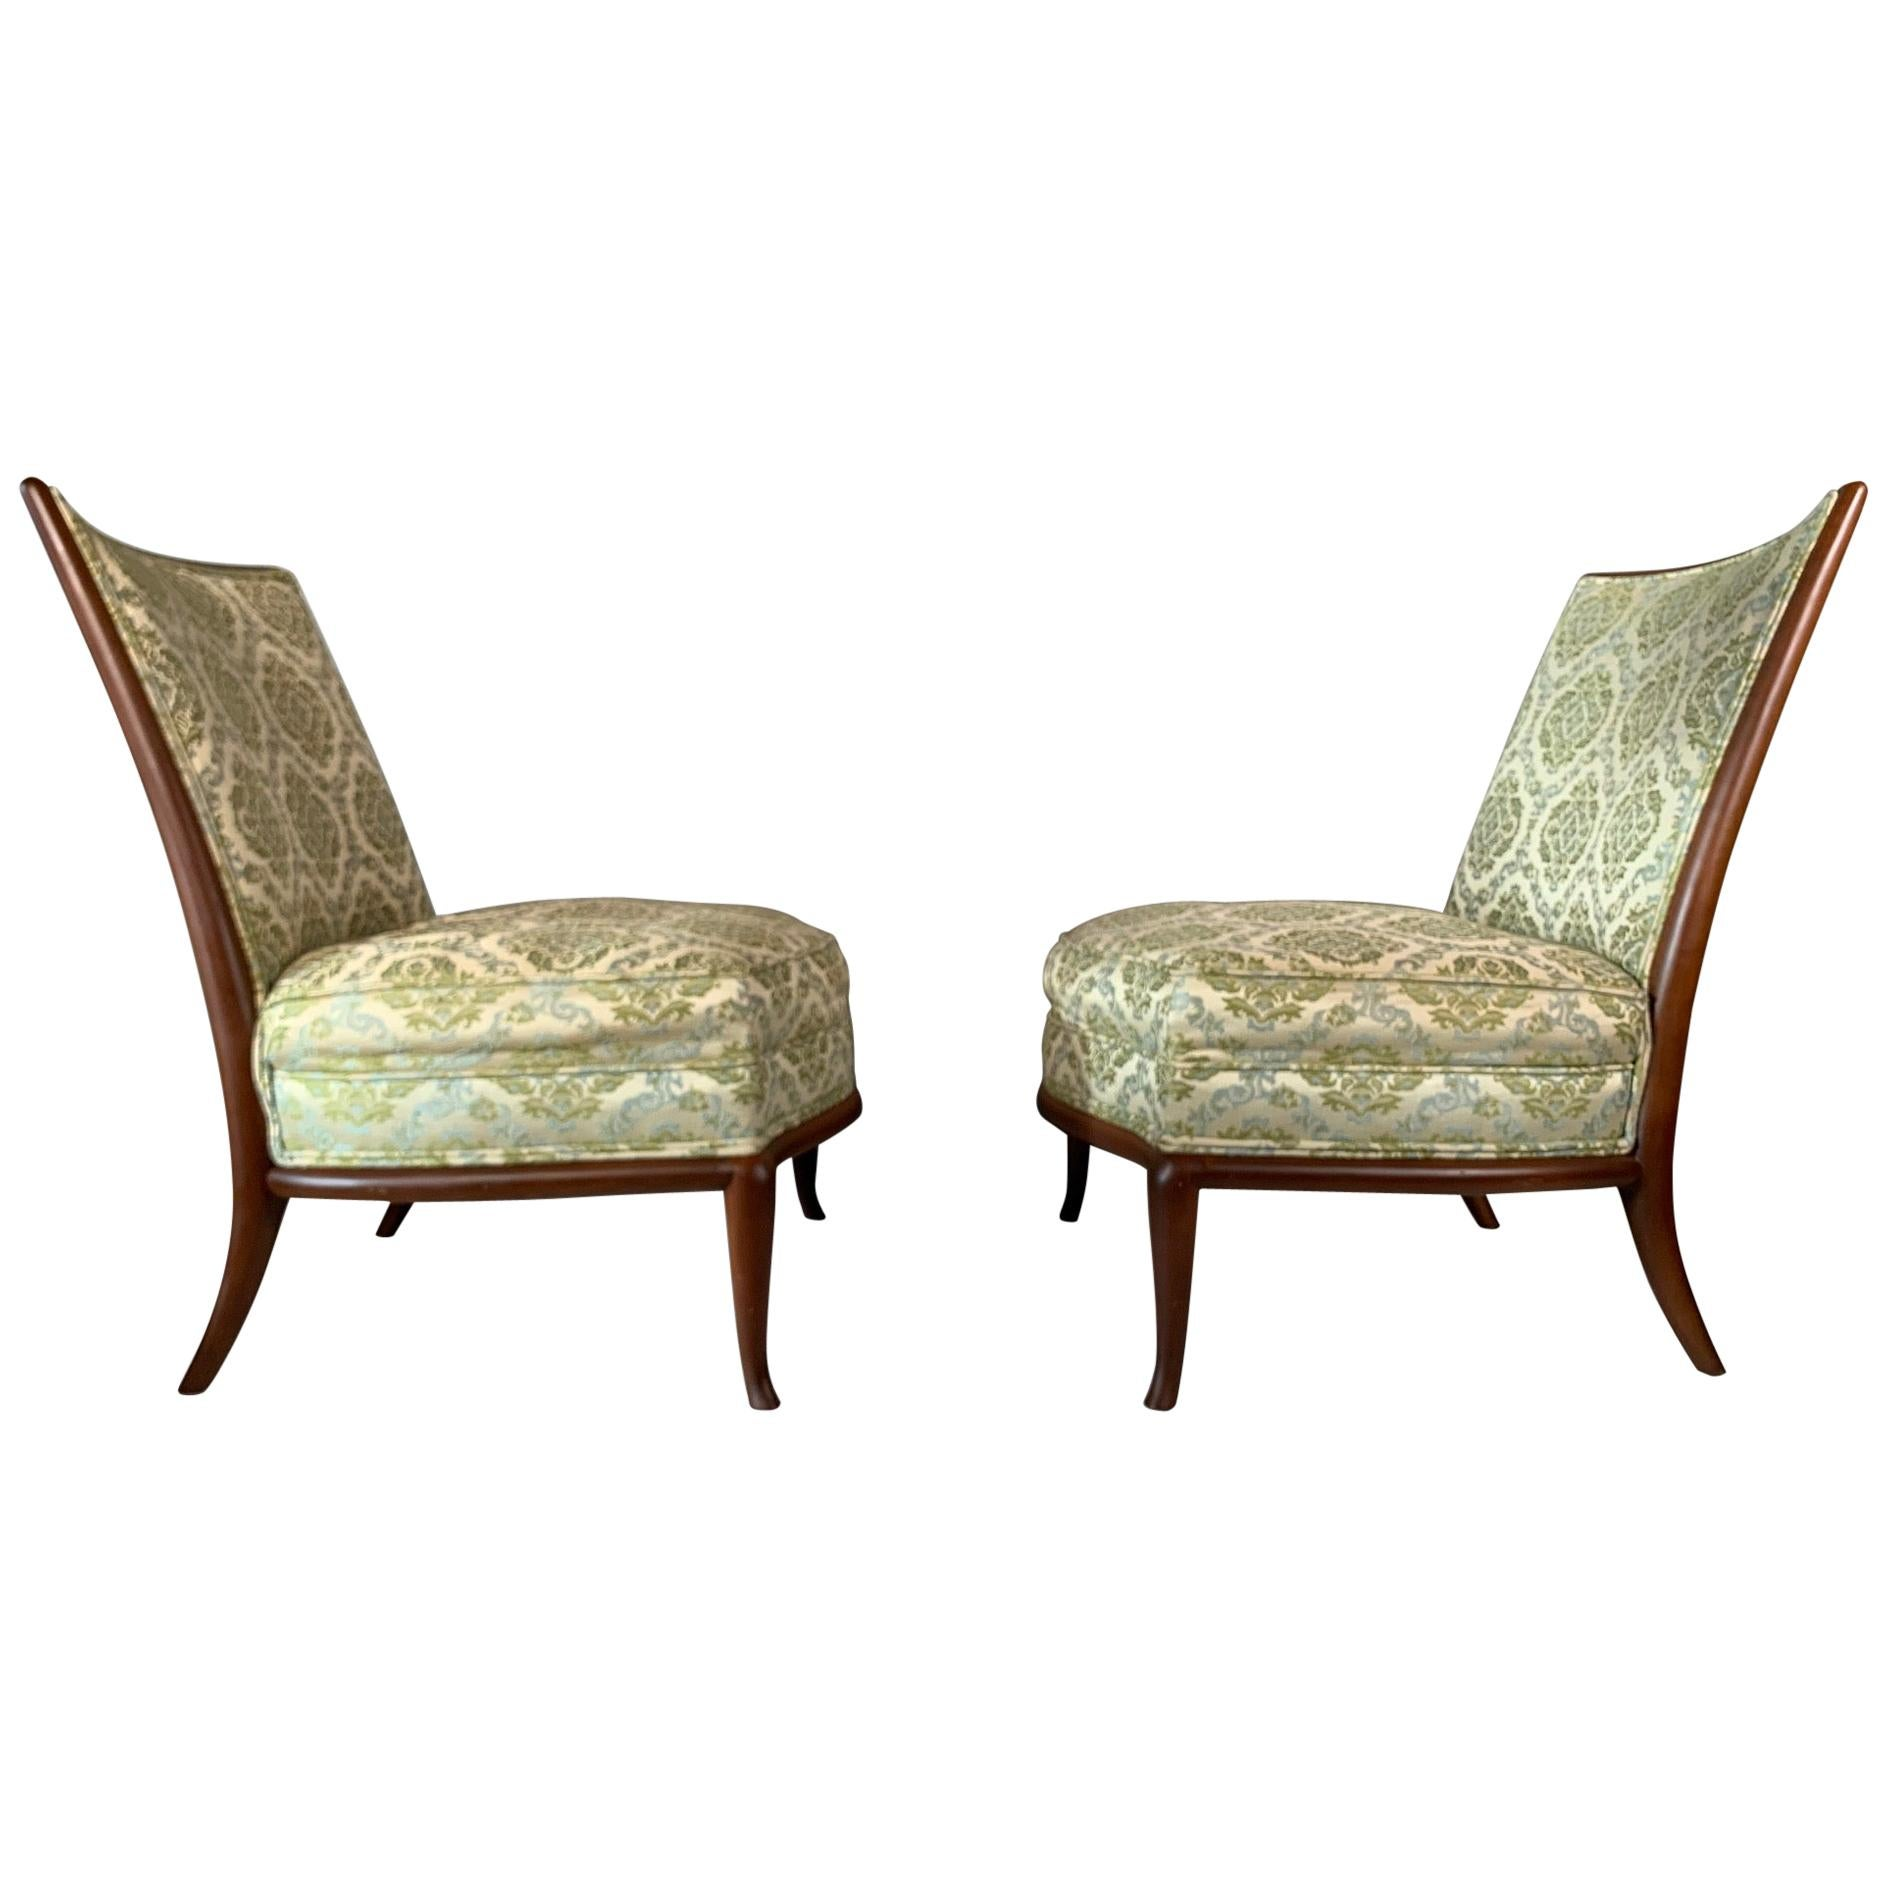 Pair of Unusual Slipper Chairs by T.H. Robsjohn-Gibbings Widdicomb, circa 1950s